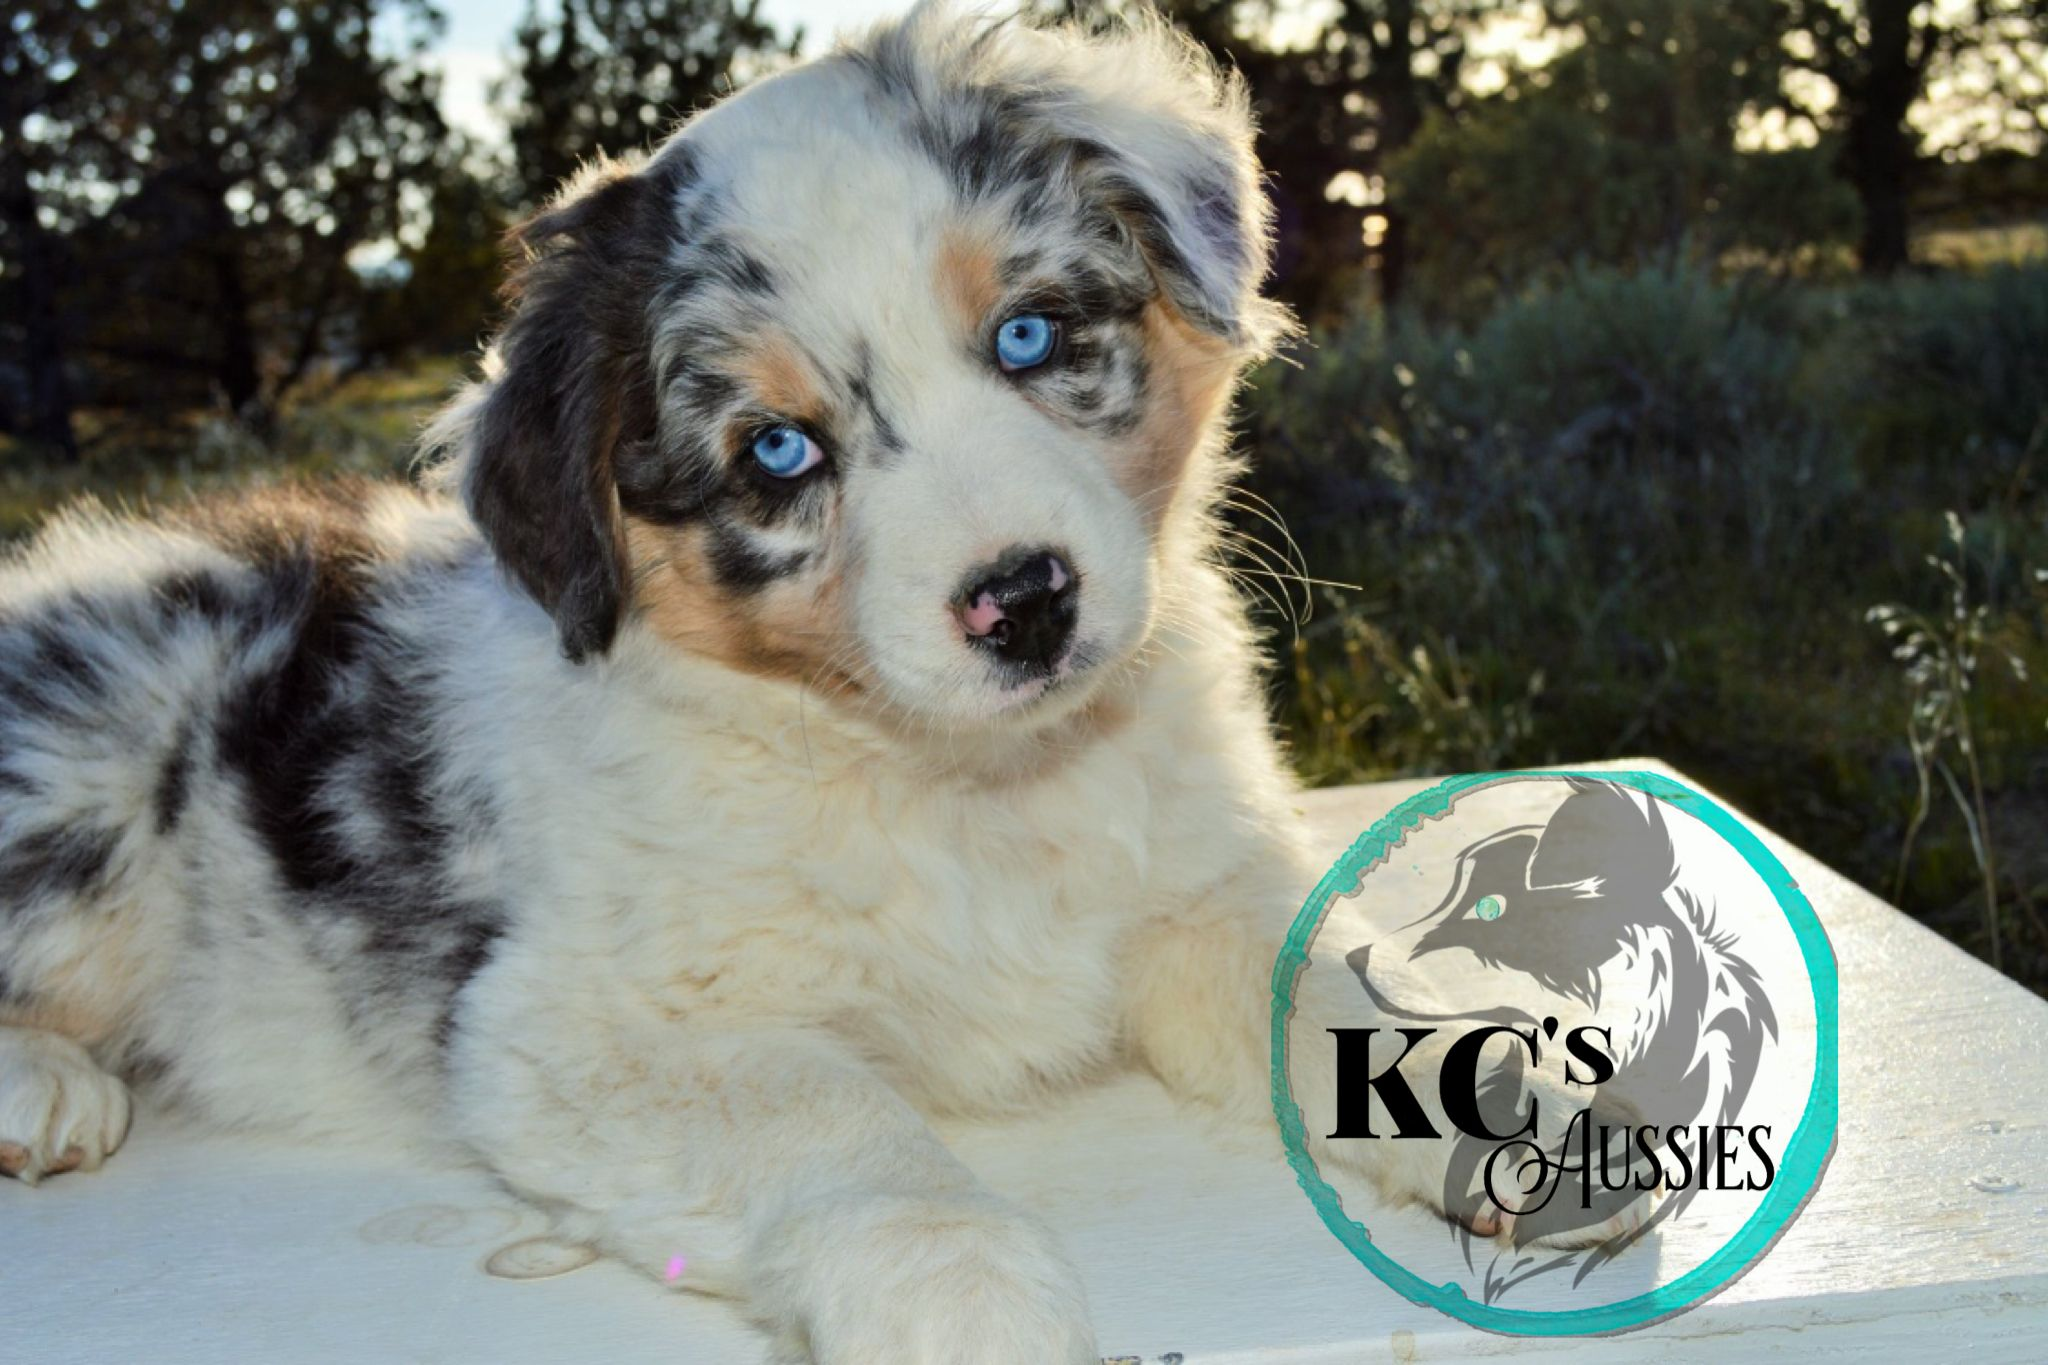 Miss Sophie Aussie Puppies Blue Merle Aussie Puppies